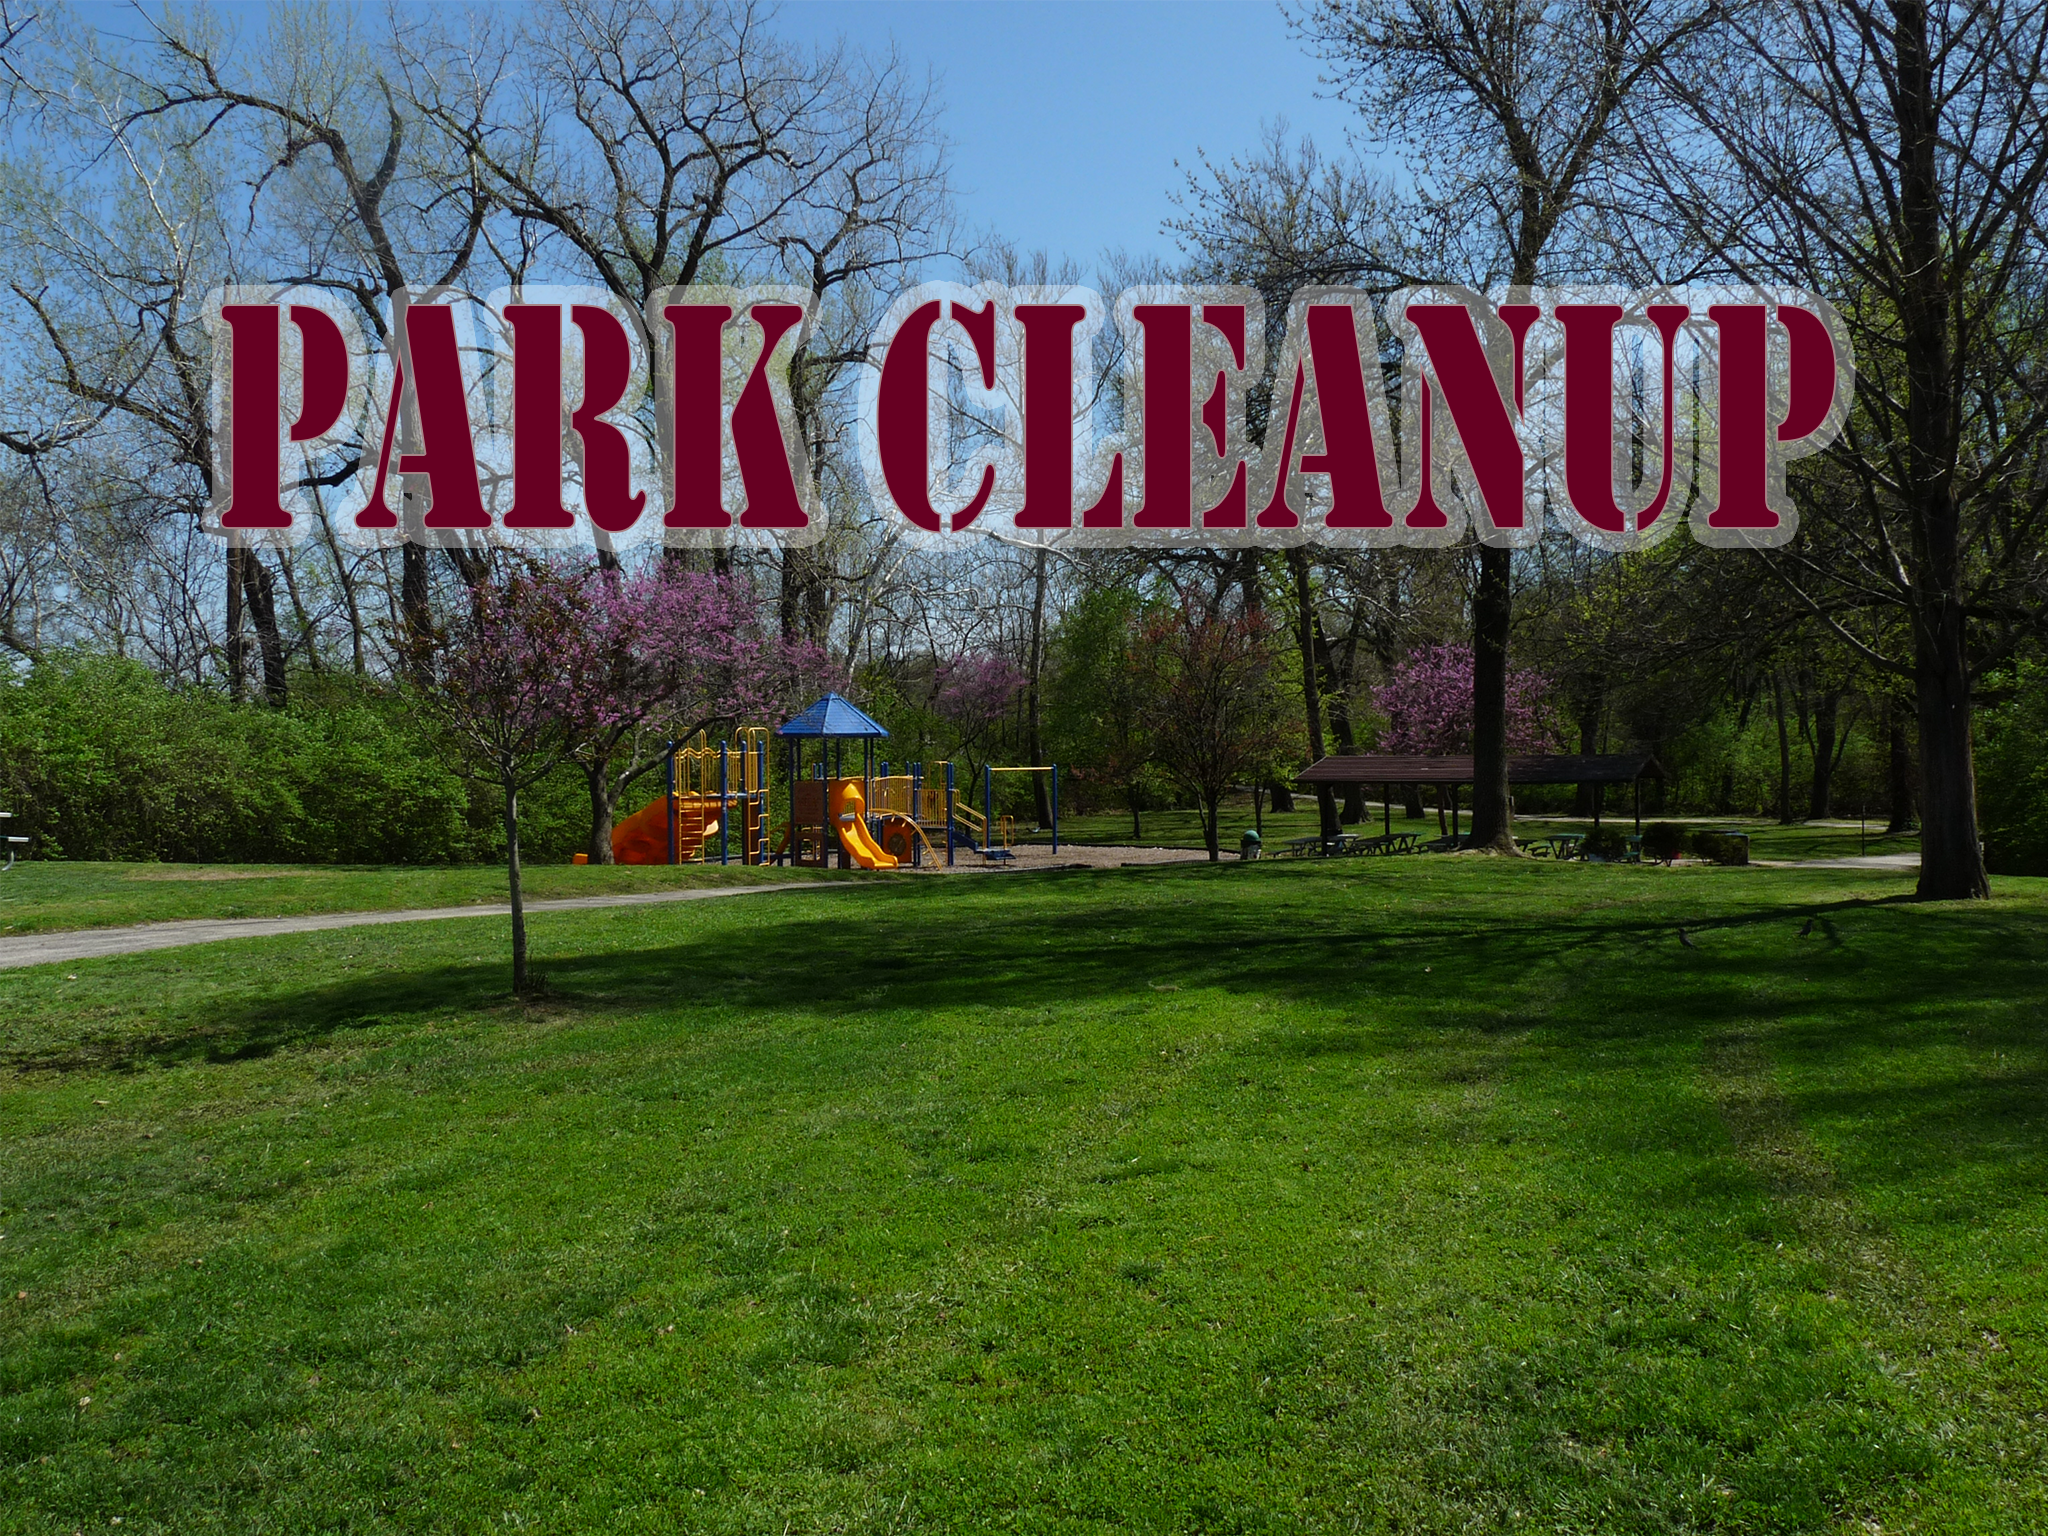 ParkCleanupGraphic